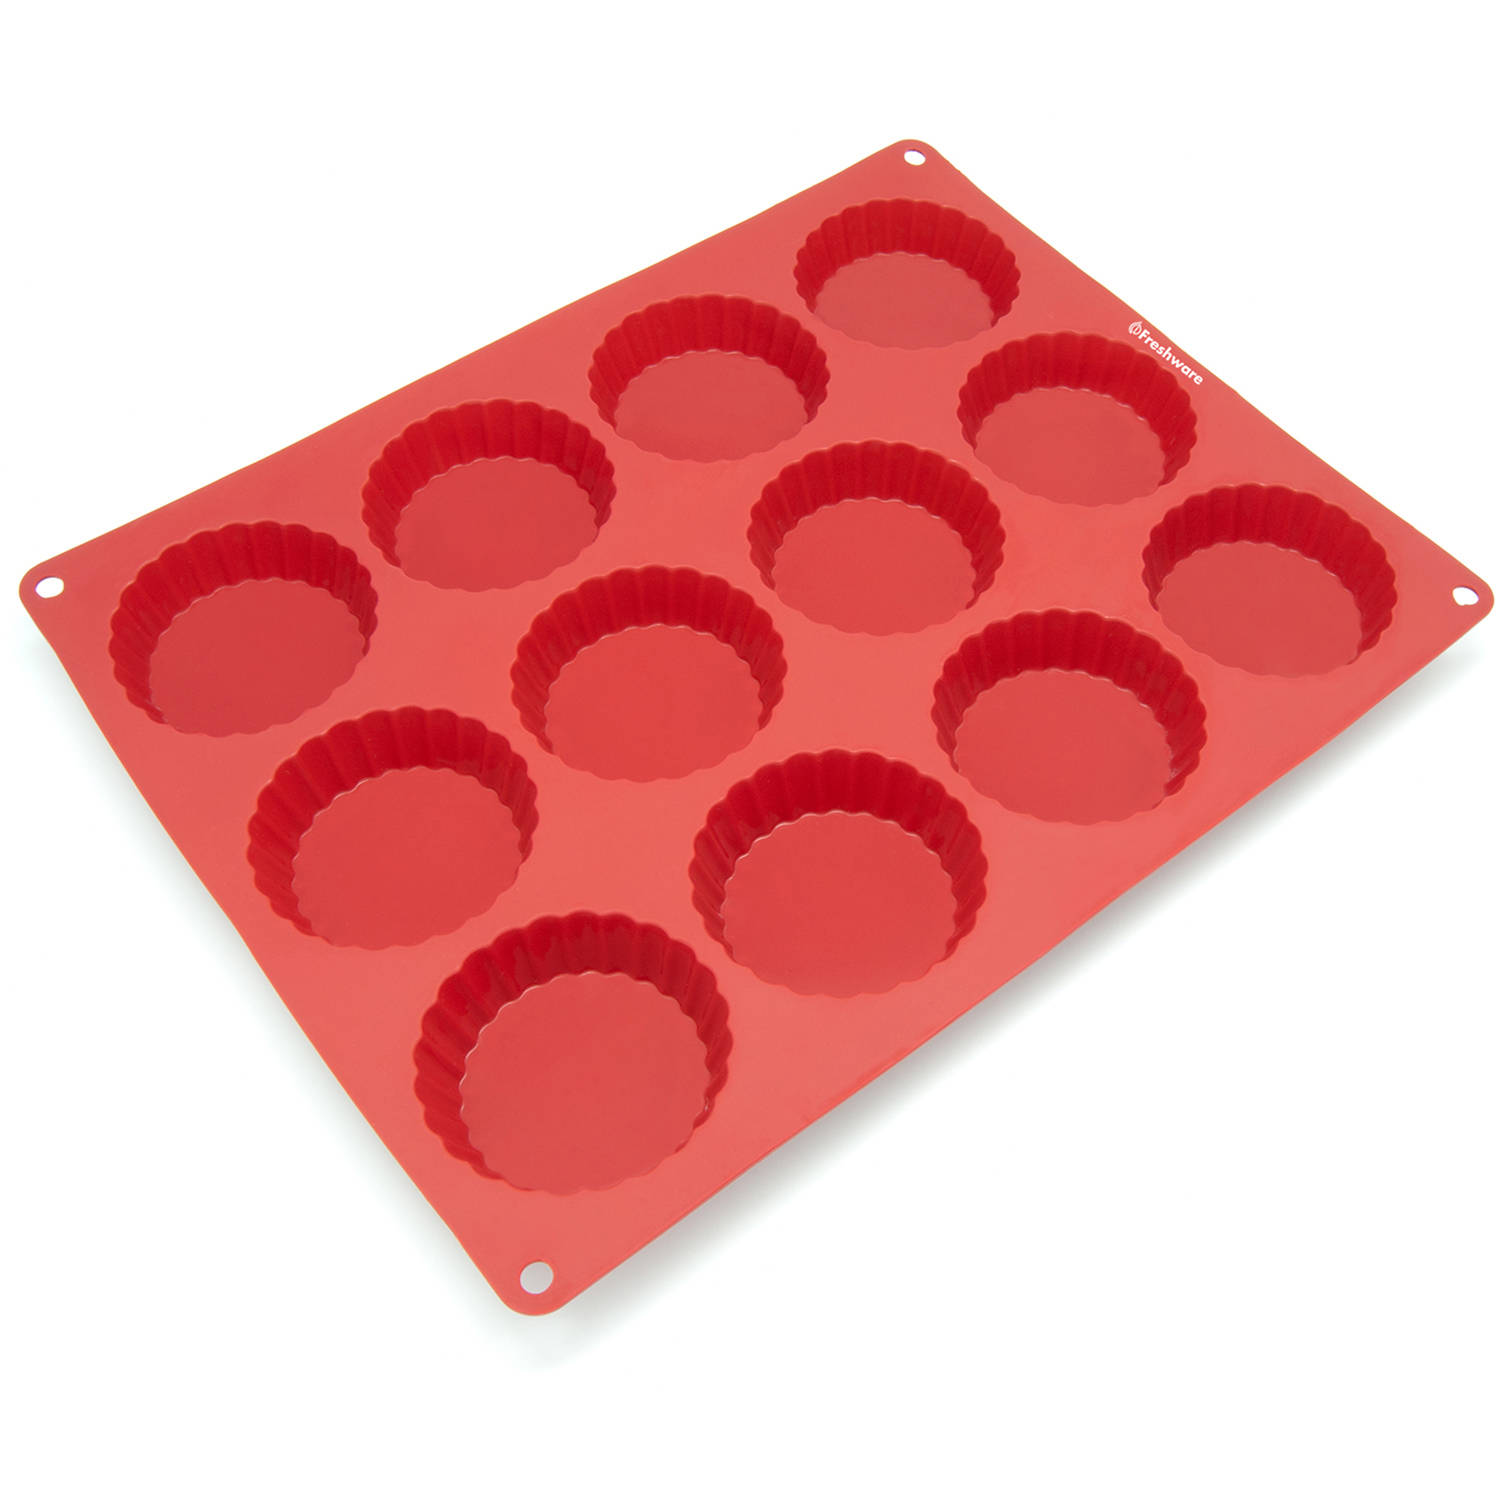 Freshware 12-Cavity Tart Silicone Mold for Quiche, Pastry, Pie and Custard, CB-111RD